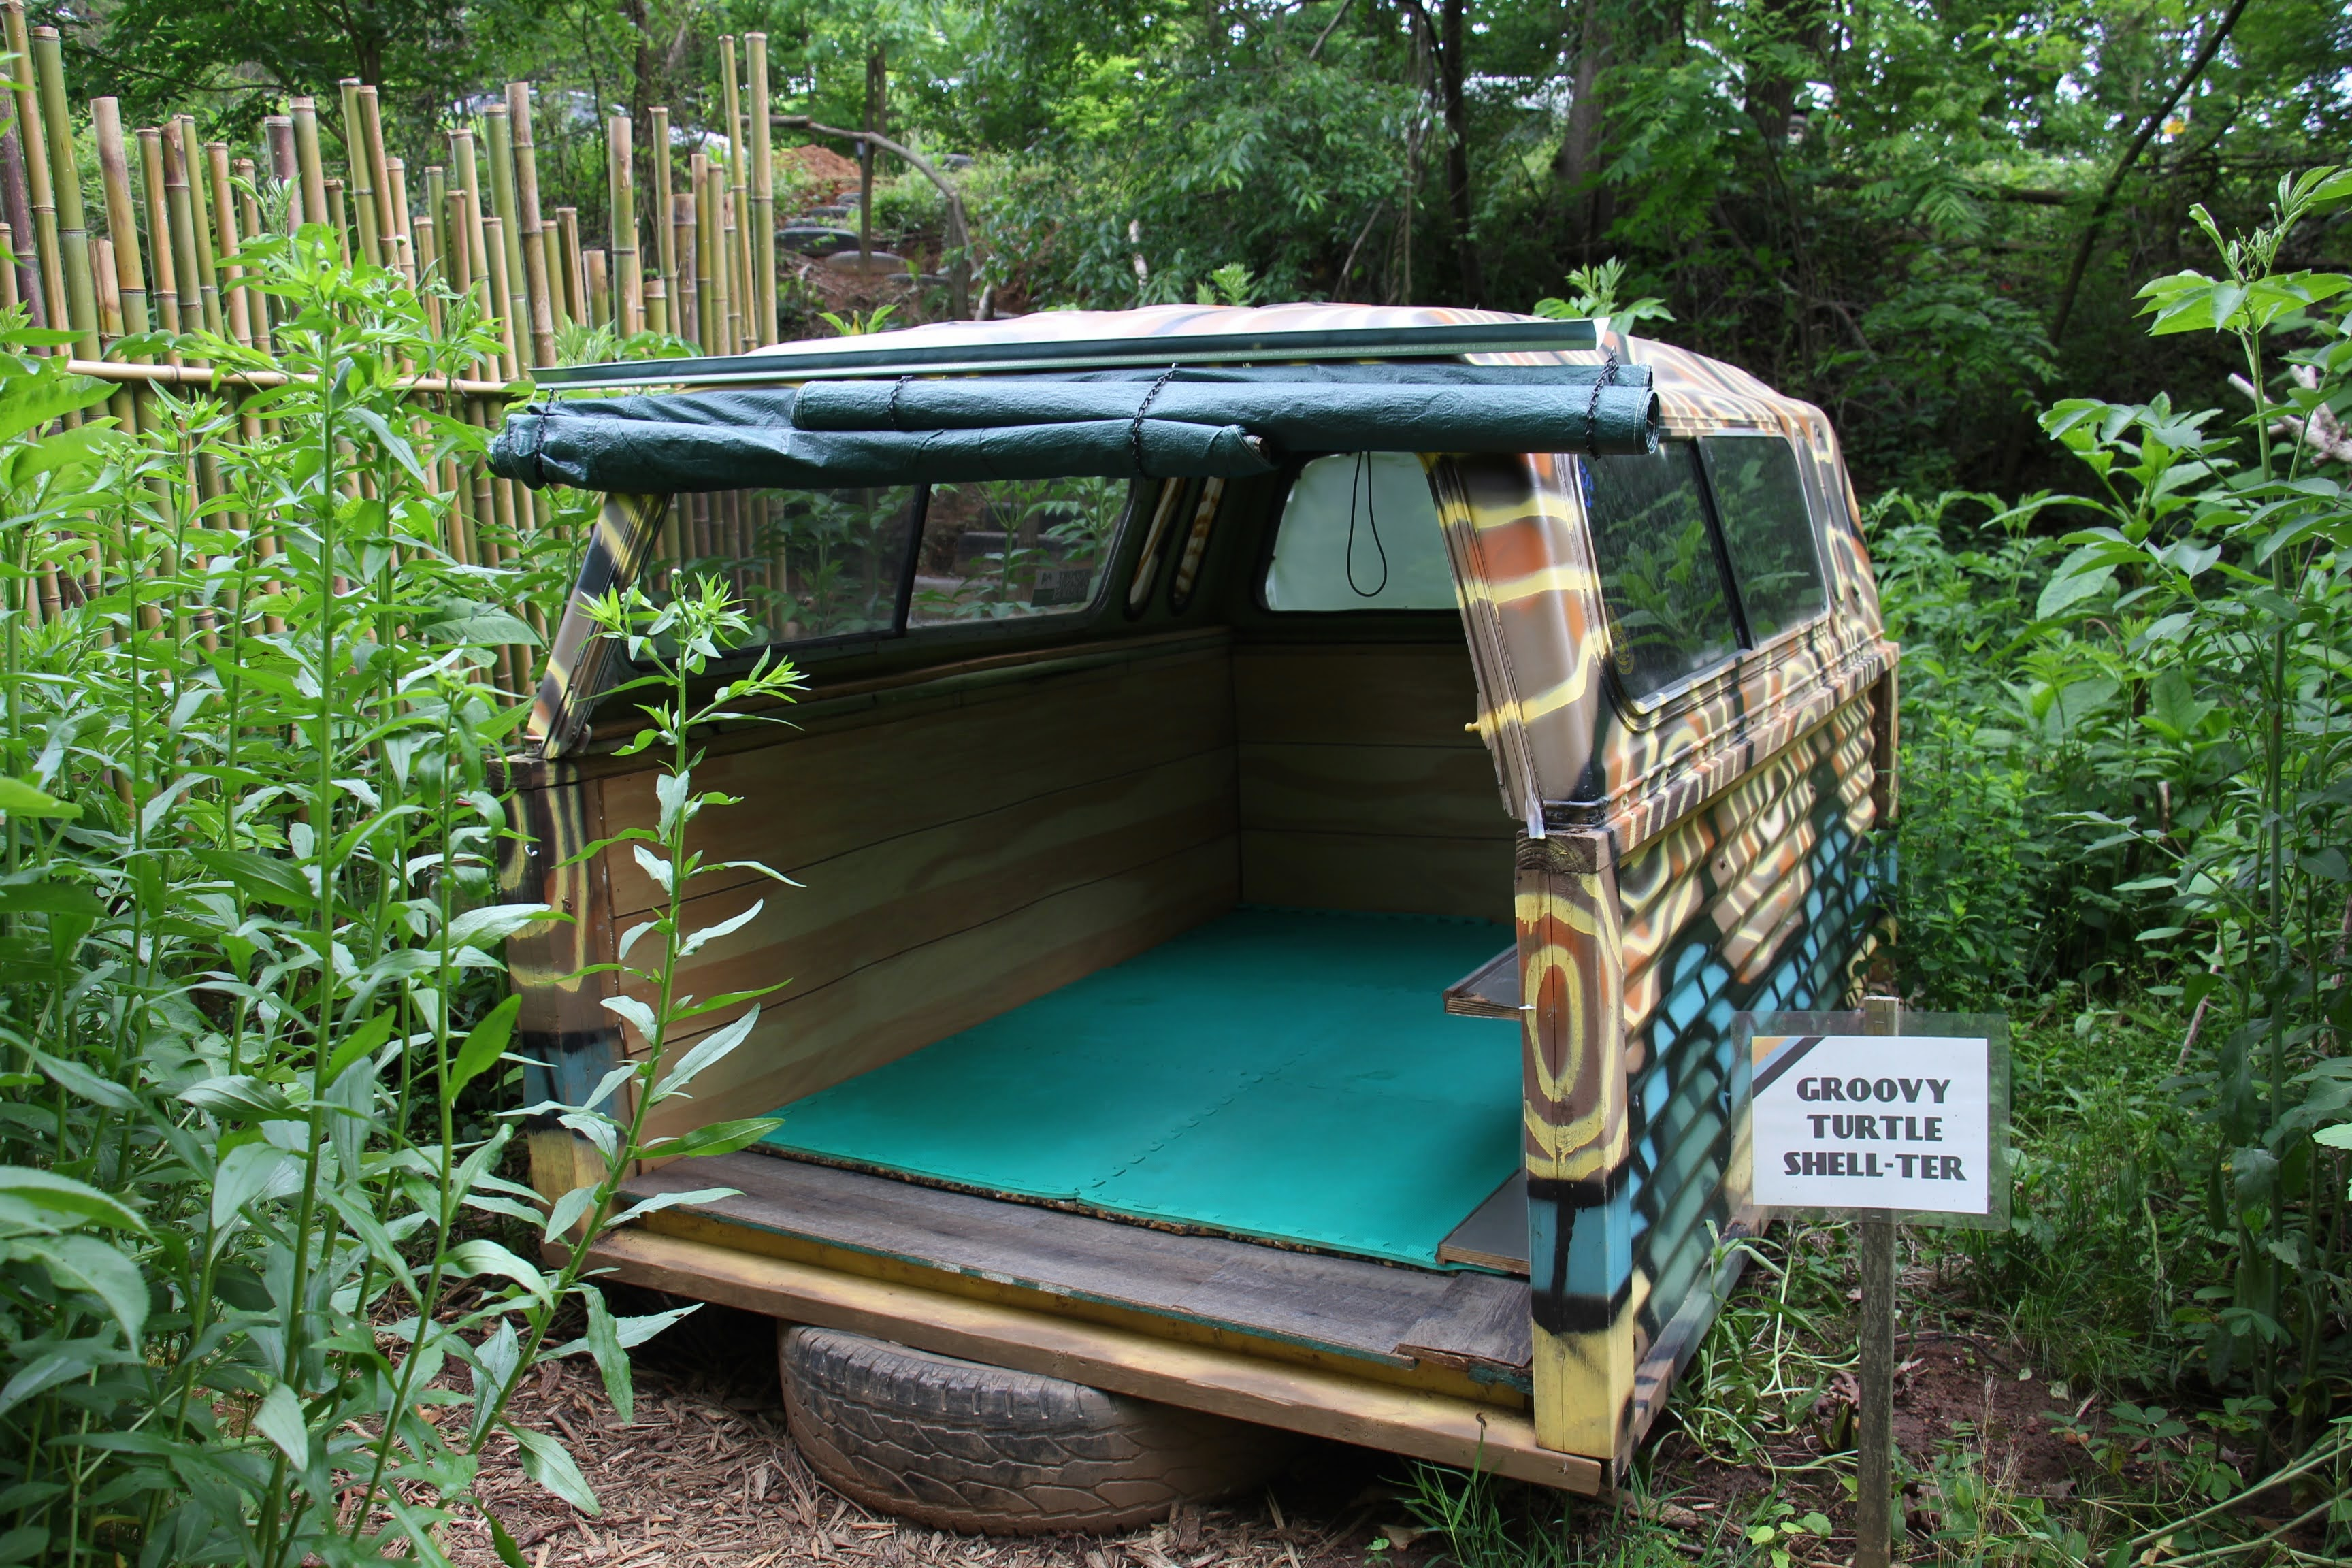 Groovy Turtle Shell Ter Huts For Rent In Asheville North Carolina United States